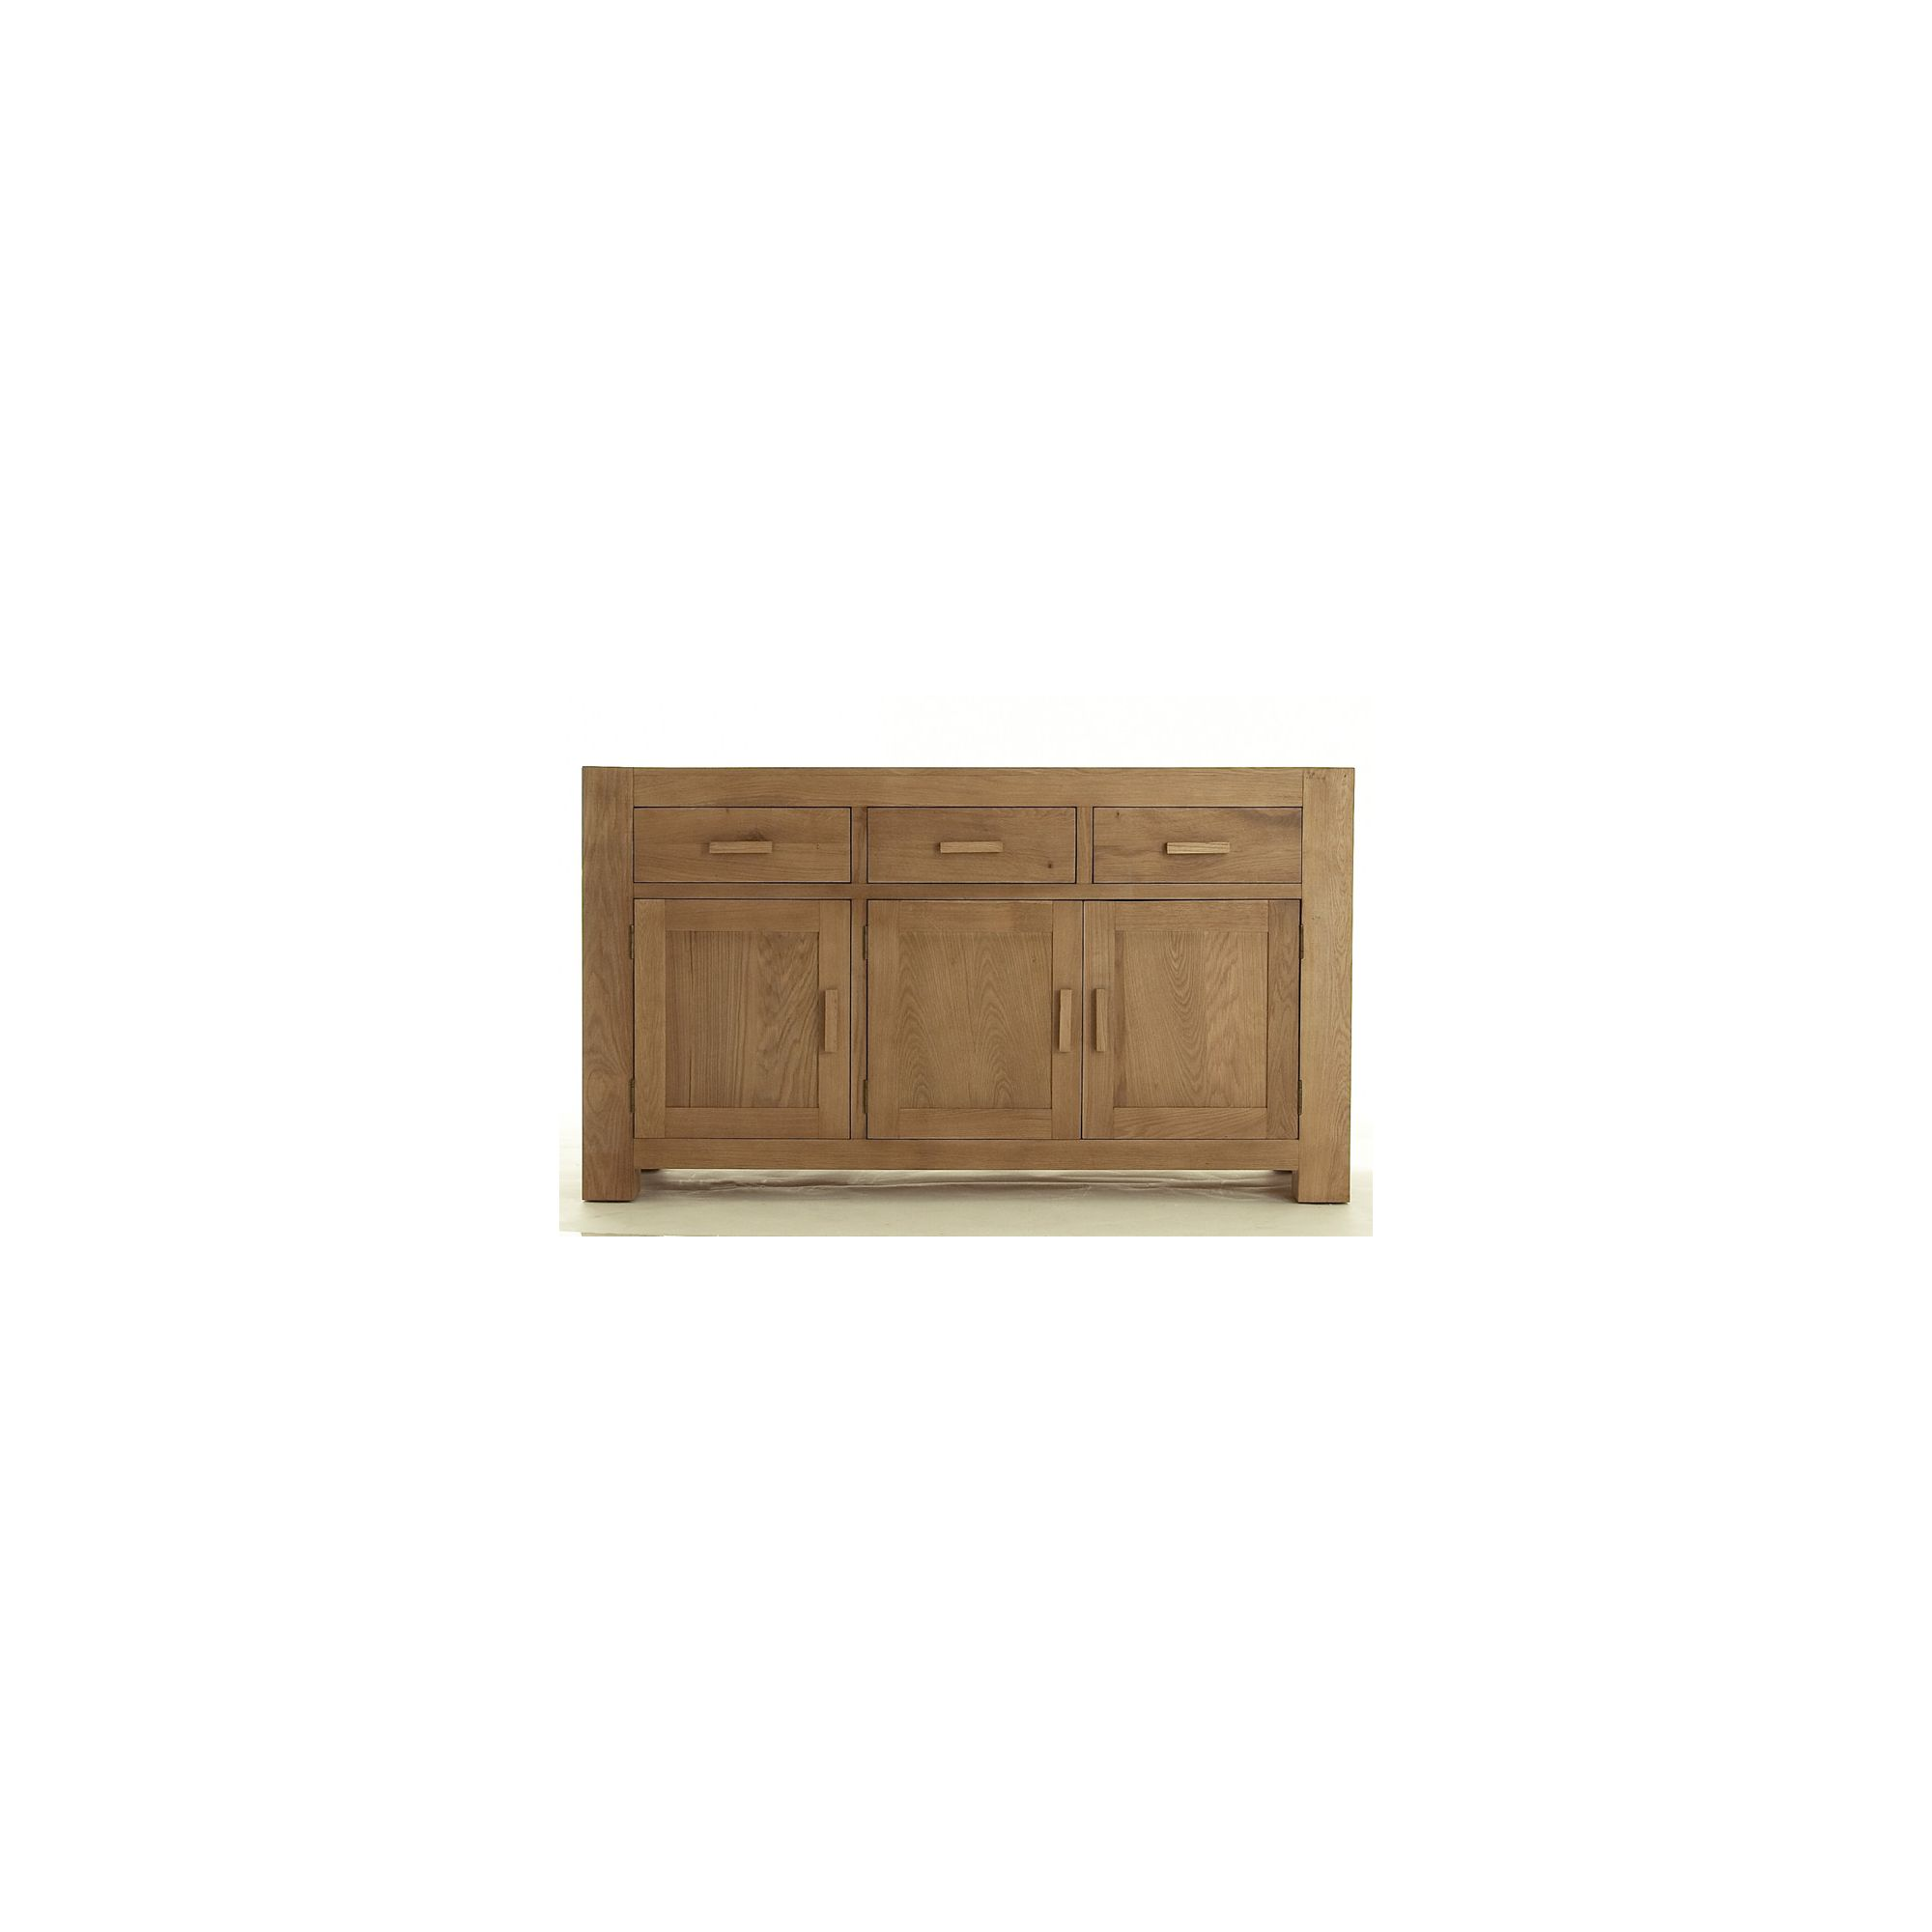 Thorndon Block Three Door Sideboard in Natural Matured Oak at Tesco Direct